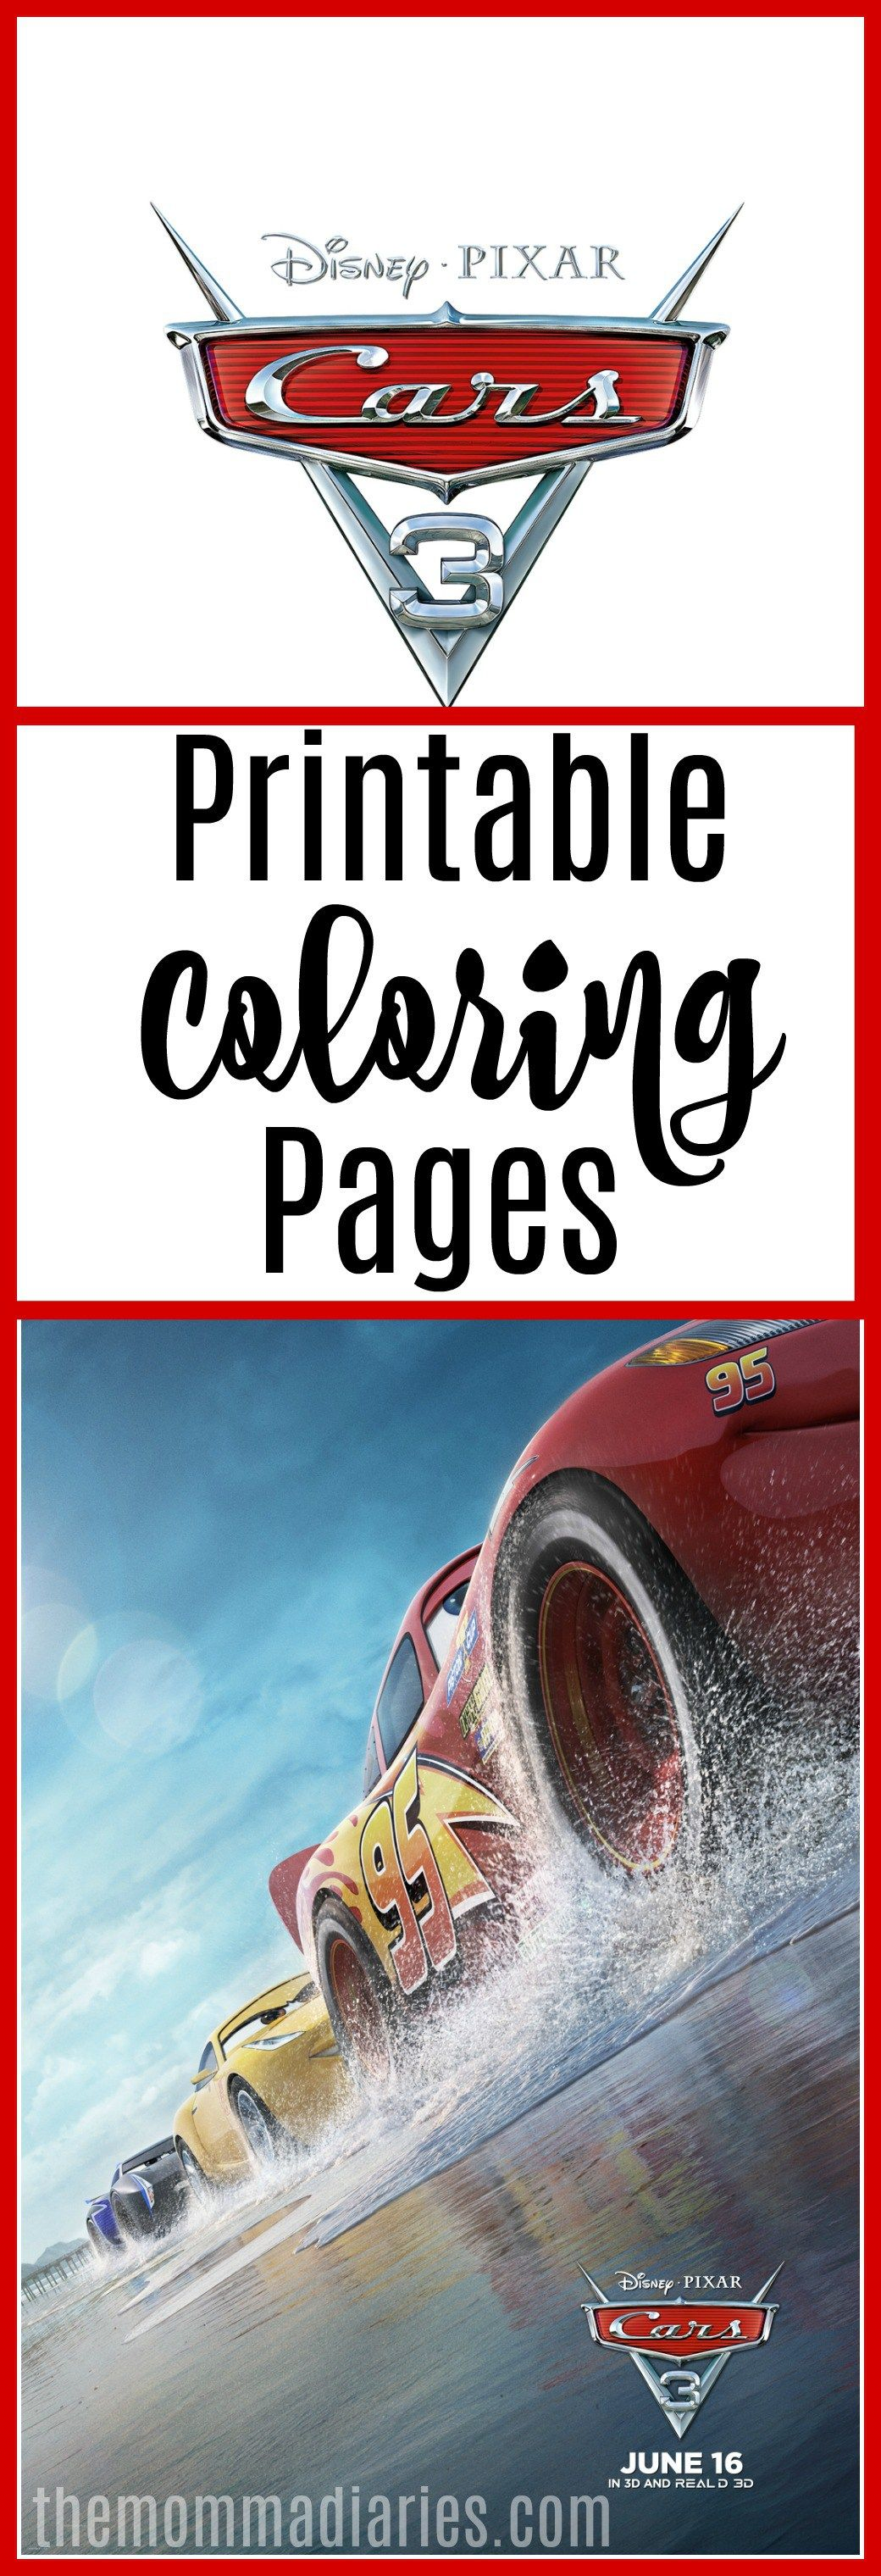 CARS 3 Movie Review - & Printable Coloring Pages